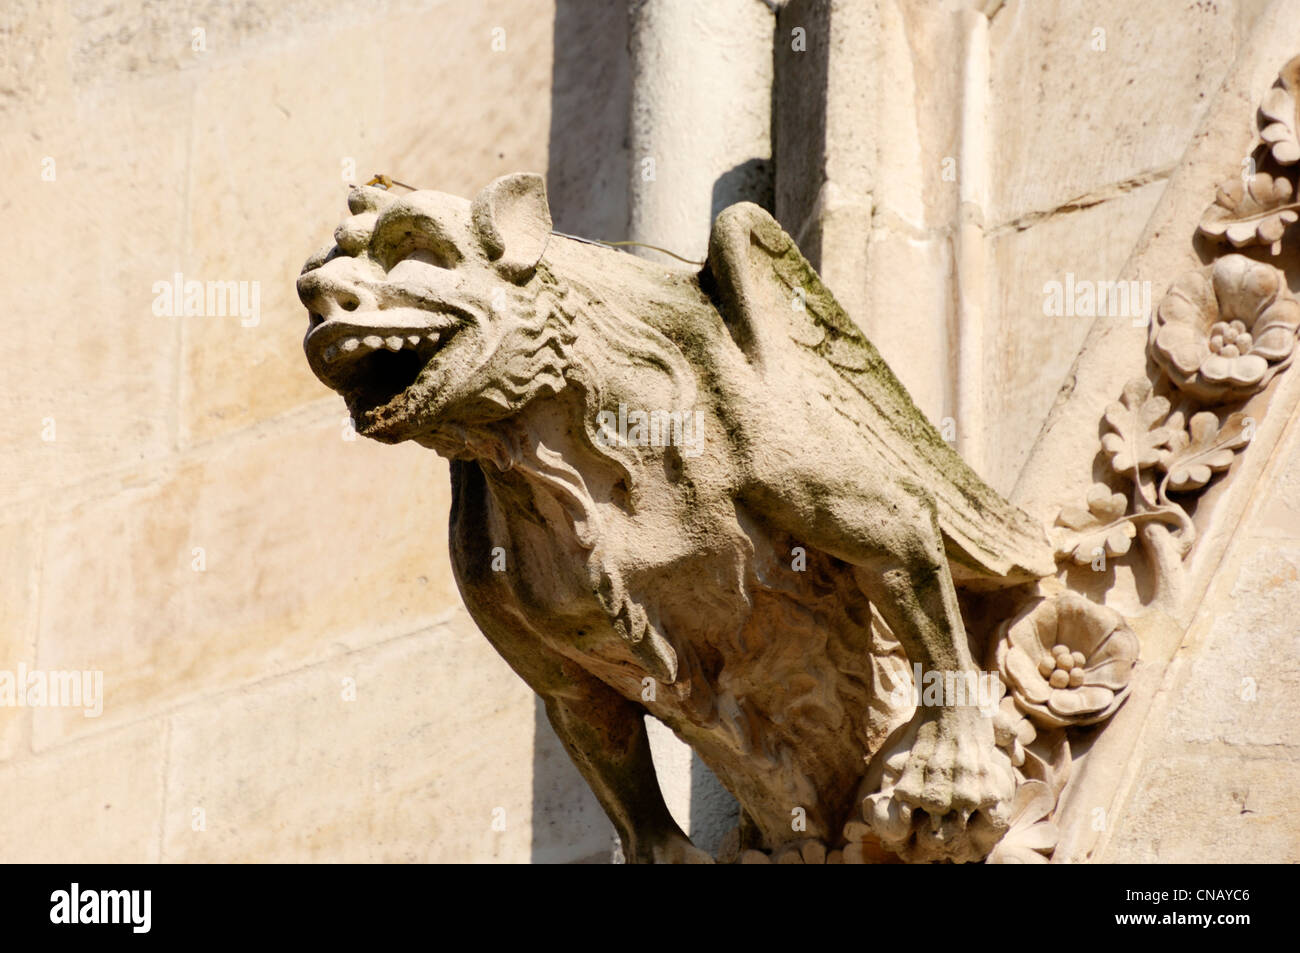 France, Somme, Amiens, Notre Dame d'Amiens Cathedral, listed as World Heritage by UNESCO, details of the gargoyles - Stock Image